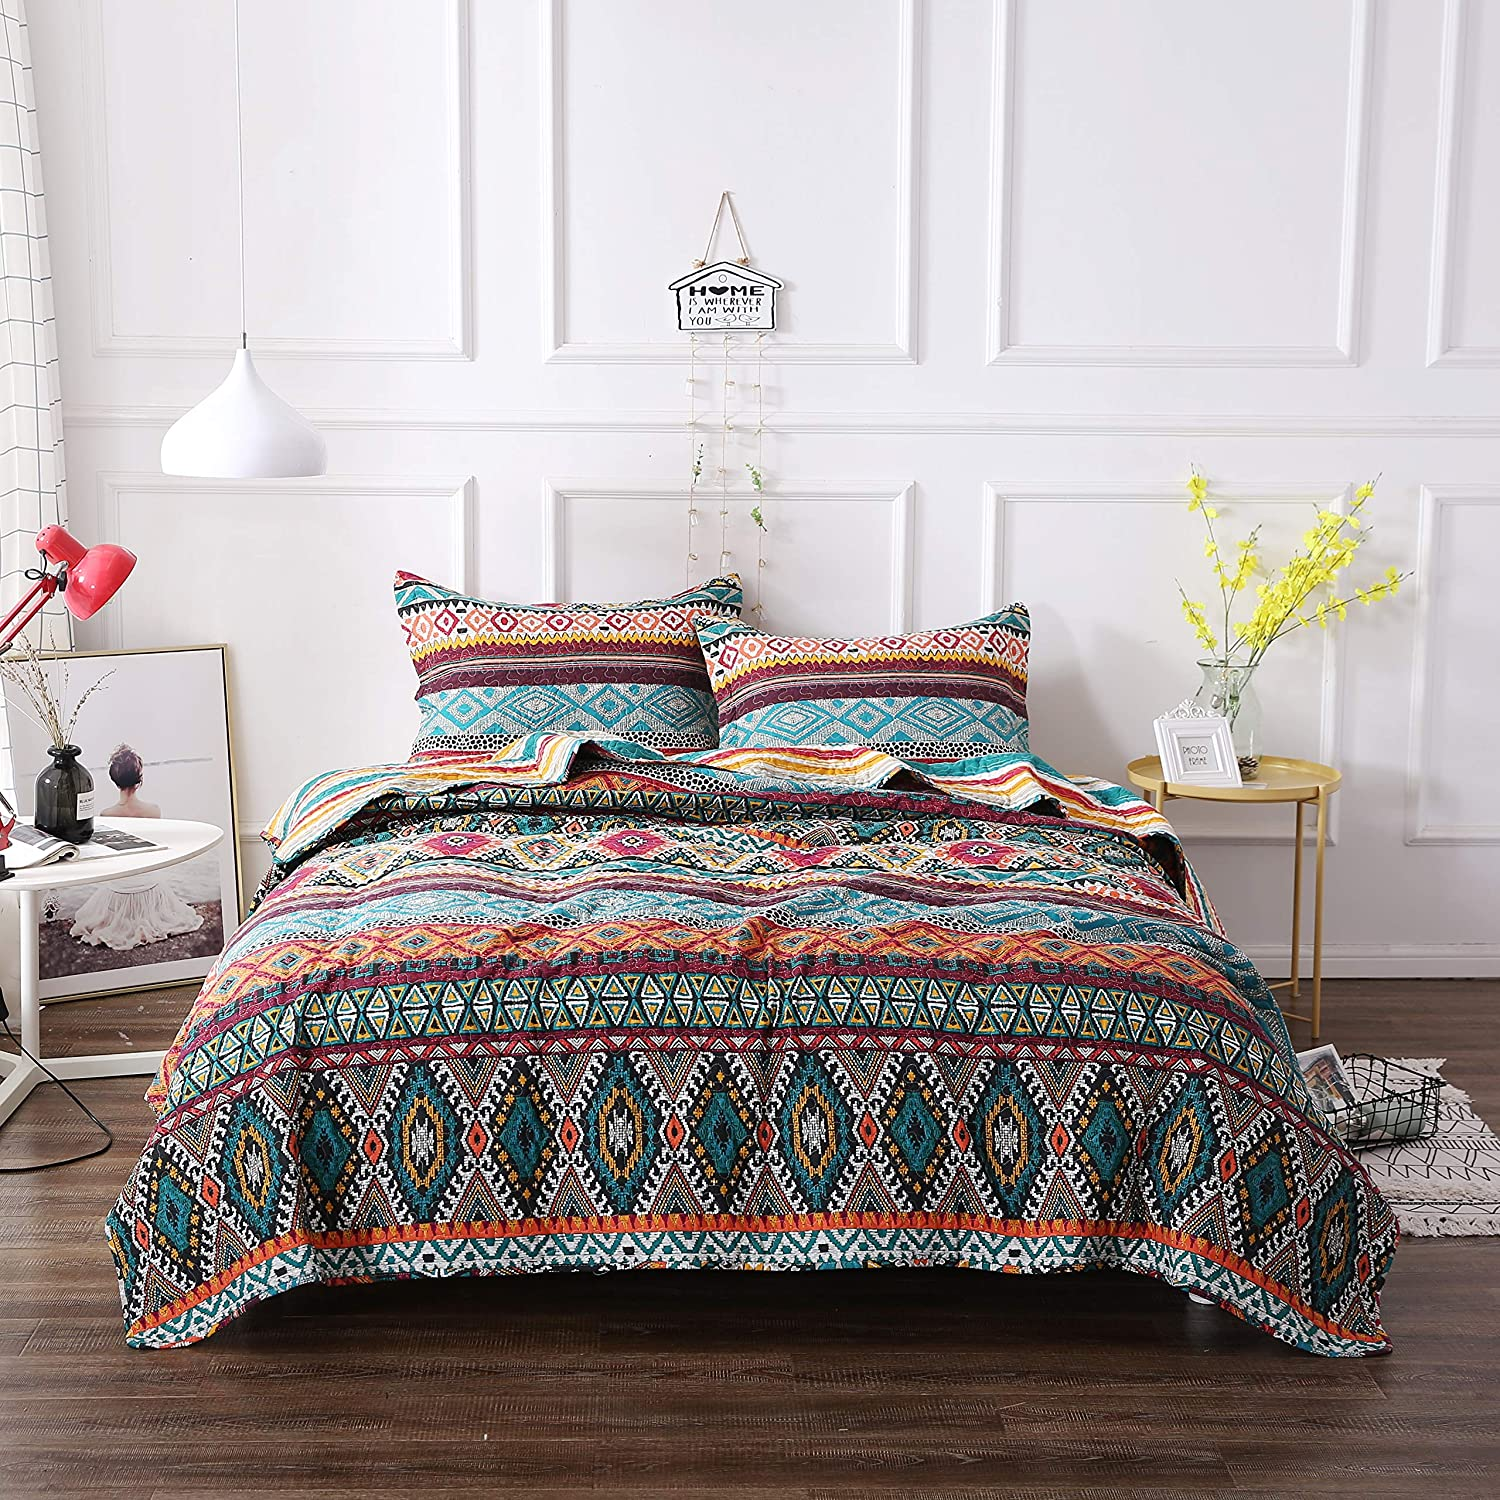 Amazon.com: DaDa Bedding Southwestern Aztec Bedspread - Bohemian Desert  Tribal Quilted Set - Bright Vibrant Multi Colorful Diamond - Queen -  3-Pieces: Home ...